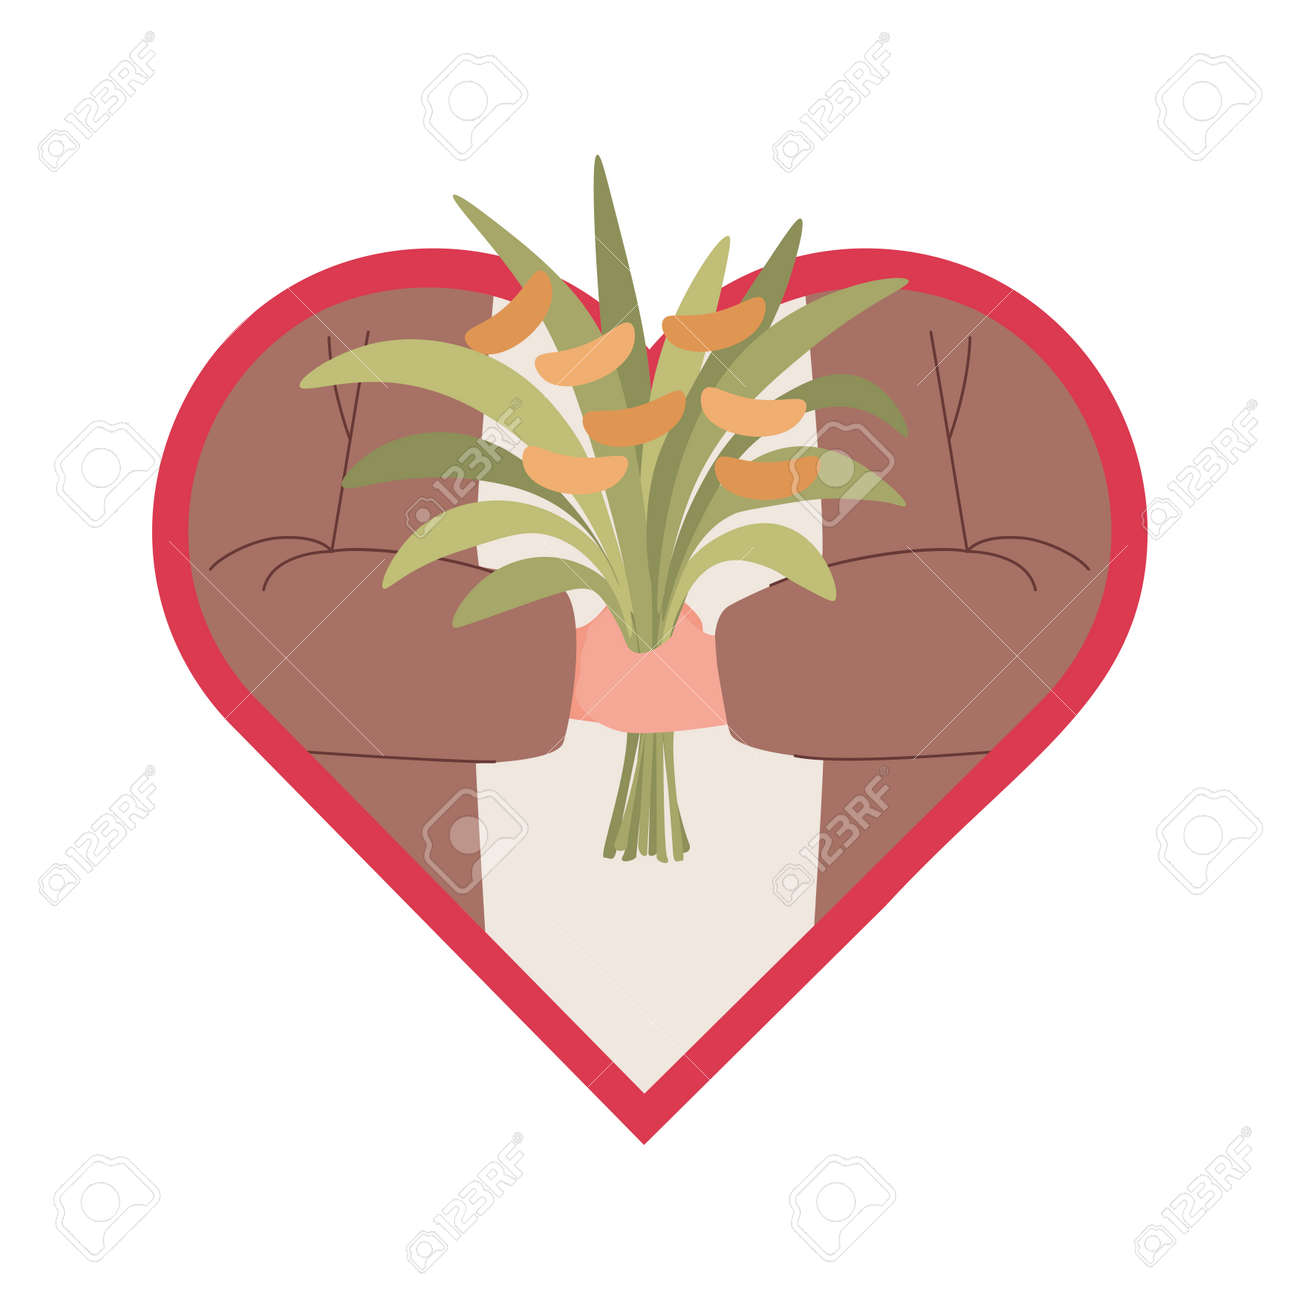 Hands of man holding bouquet of flowers vector flat illustration in the heart frame. - 173920368